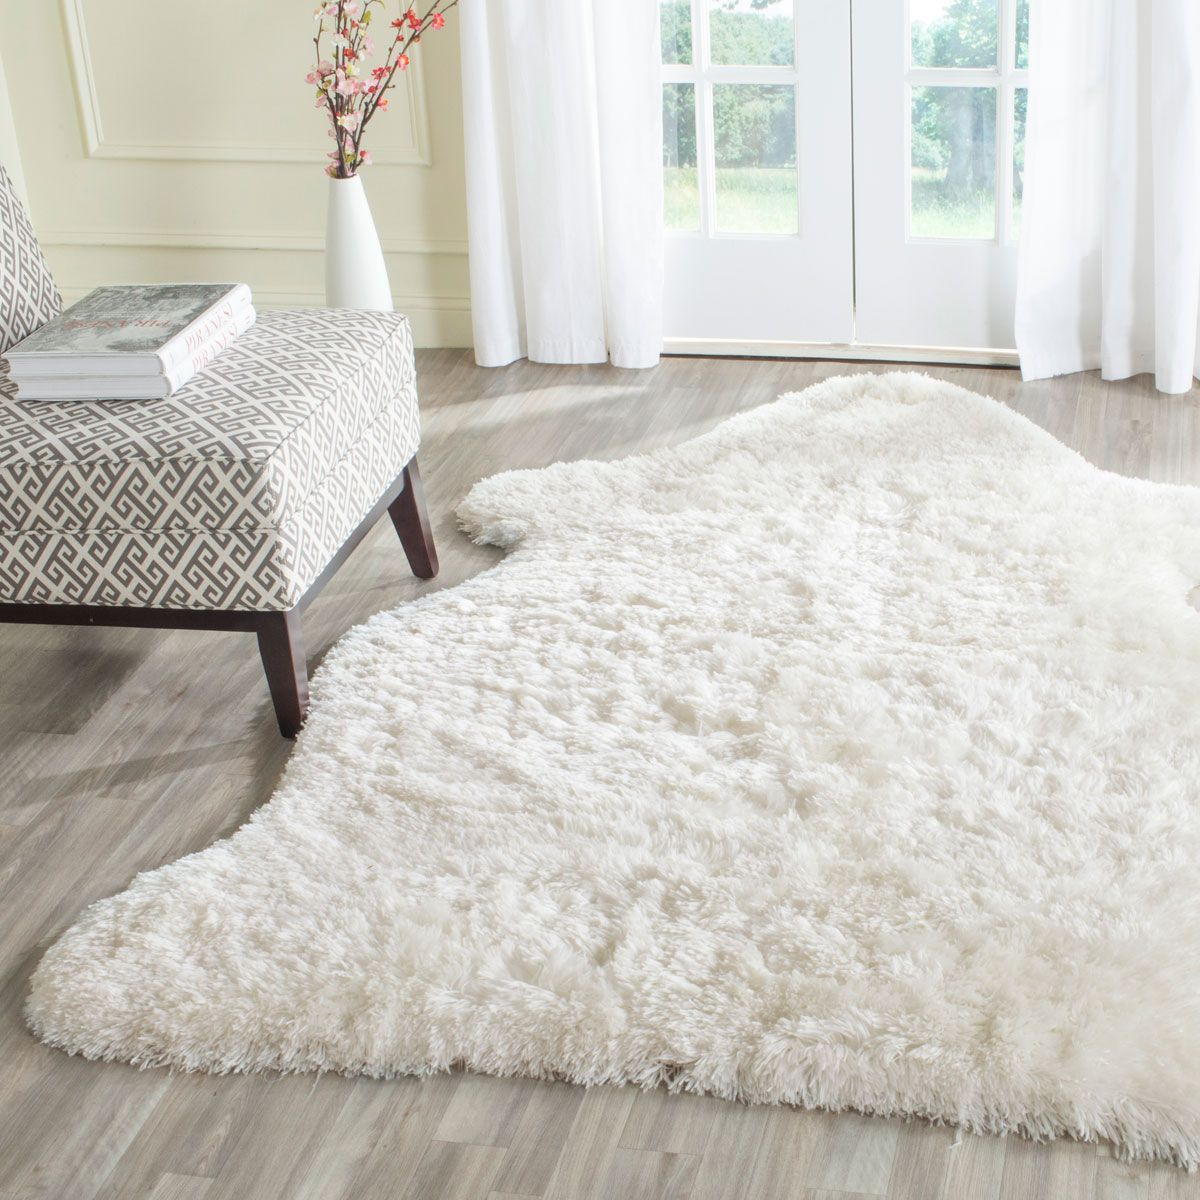 white shag rug in bedroom. Plush Ivory Shag Rug | Arctic Collection - Safavieh.com White In Bedroom